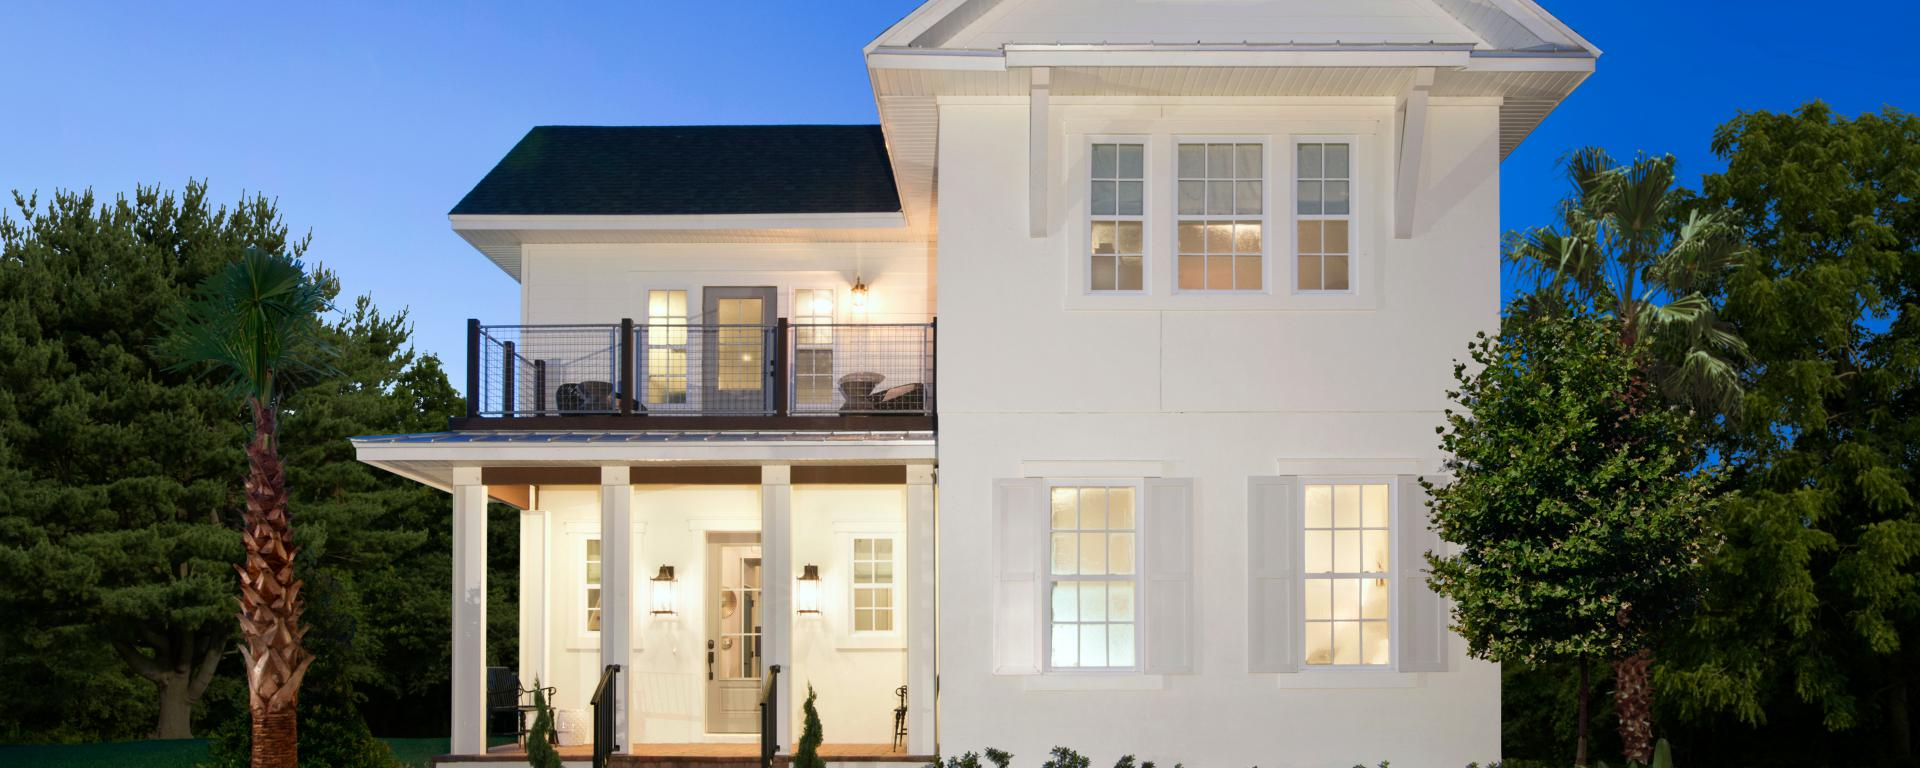 Anderson New Home Plan for Laureate Park Classics Community in ...